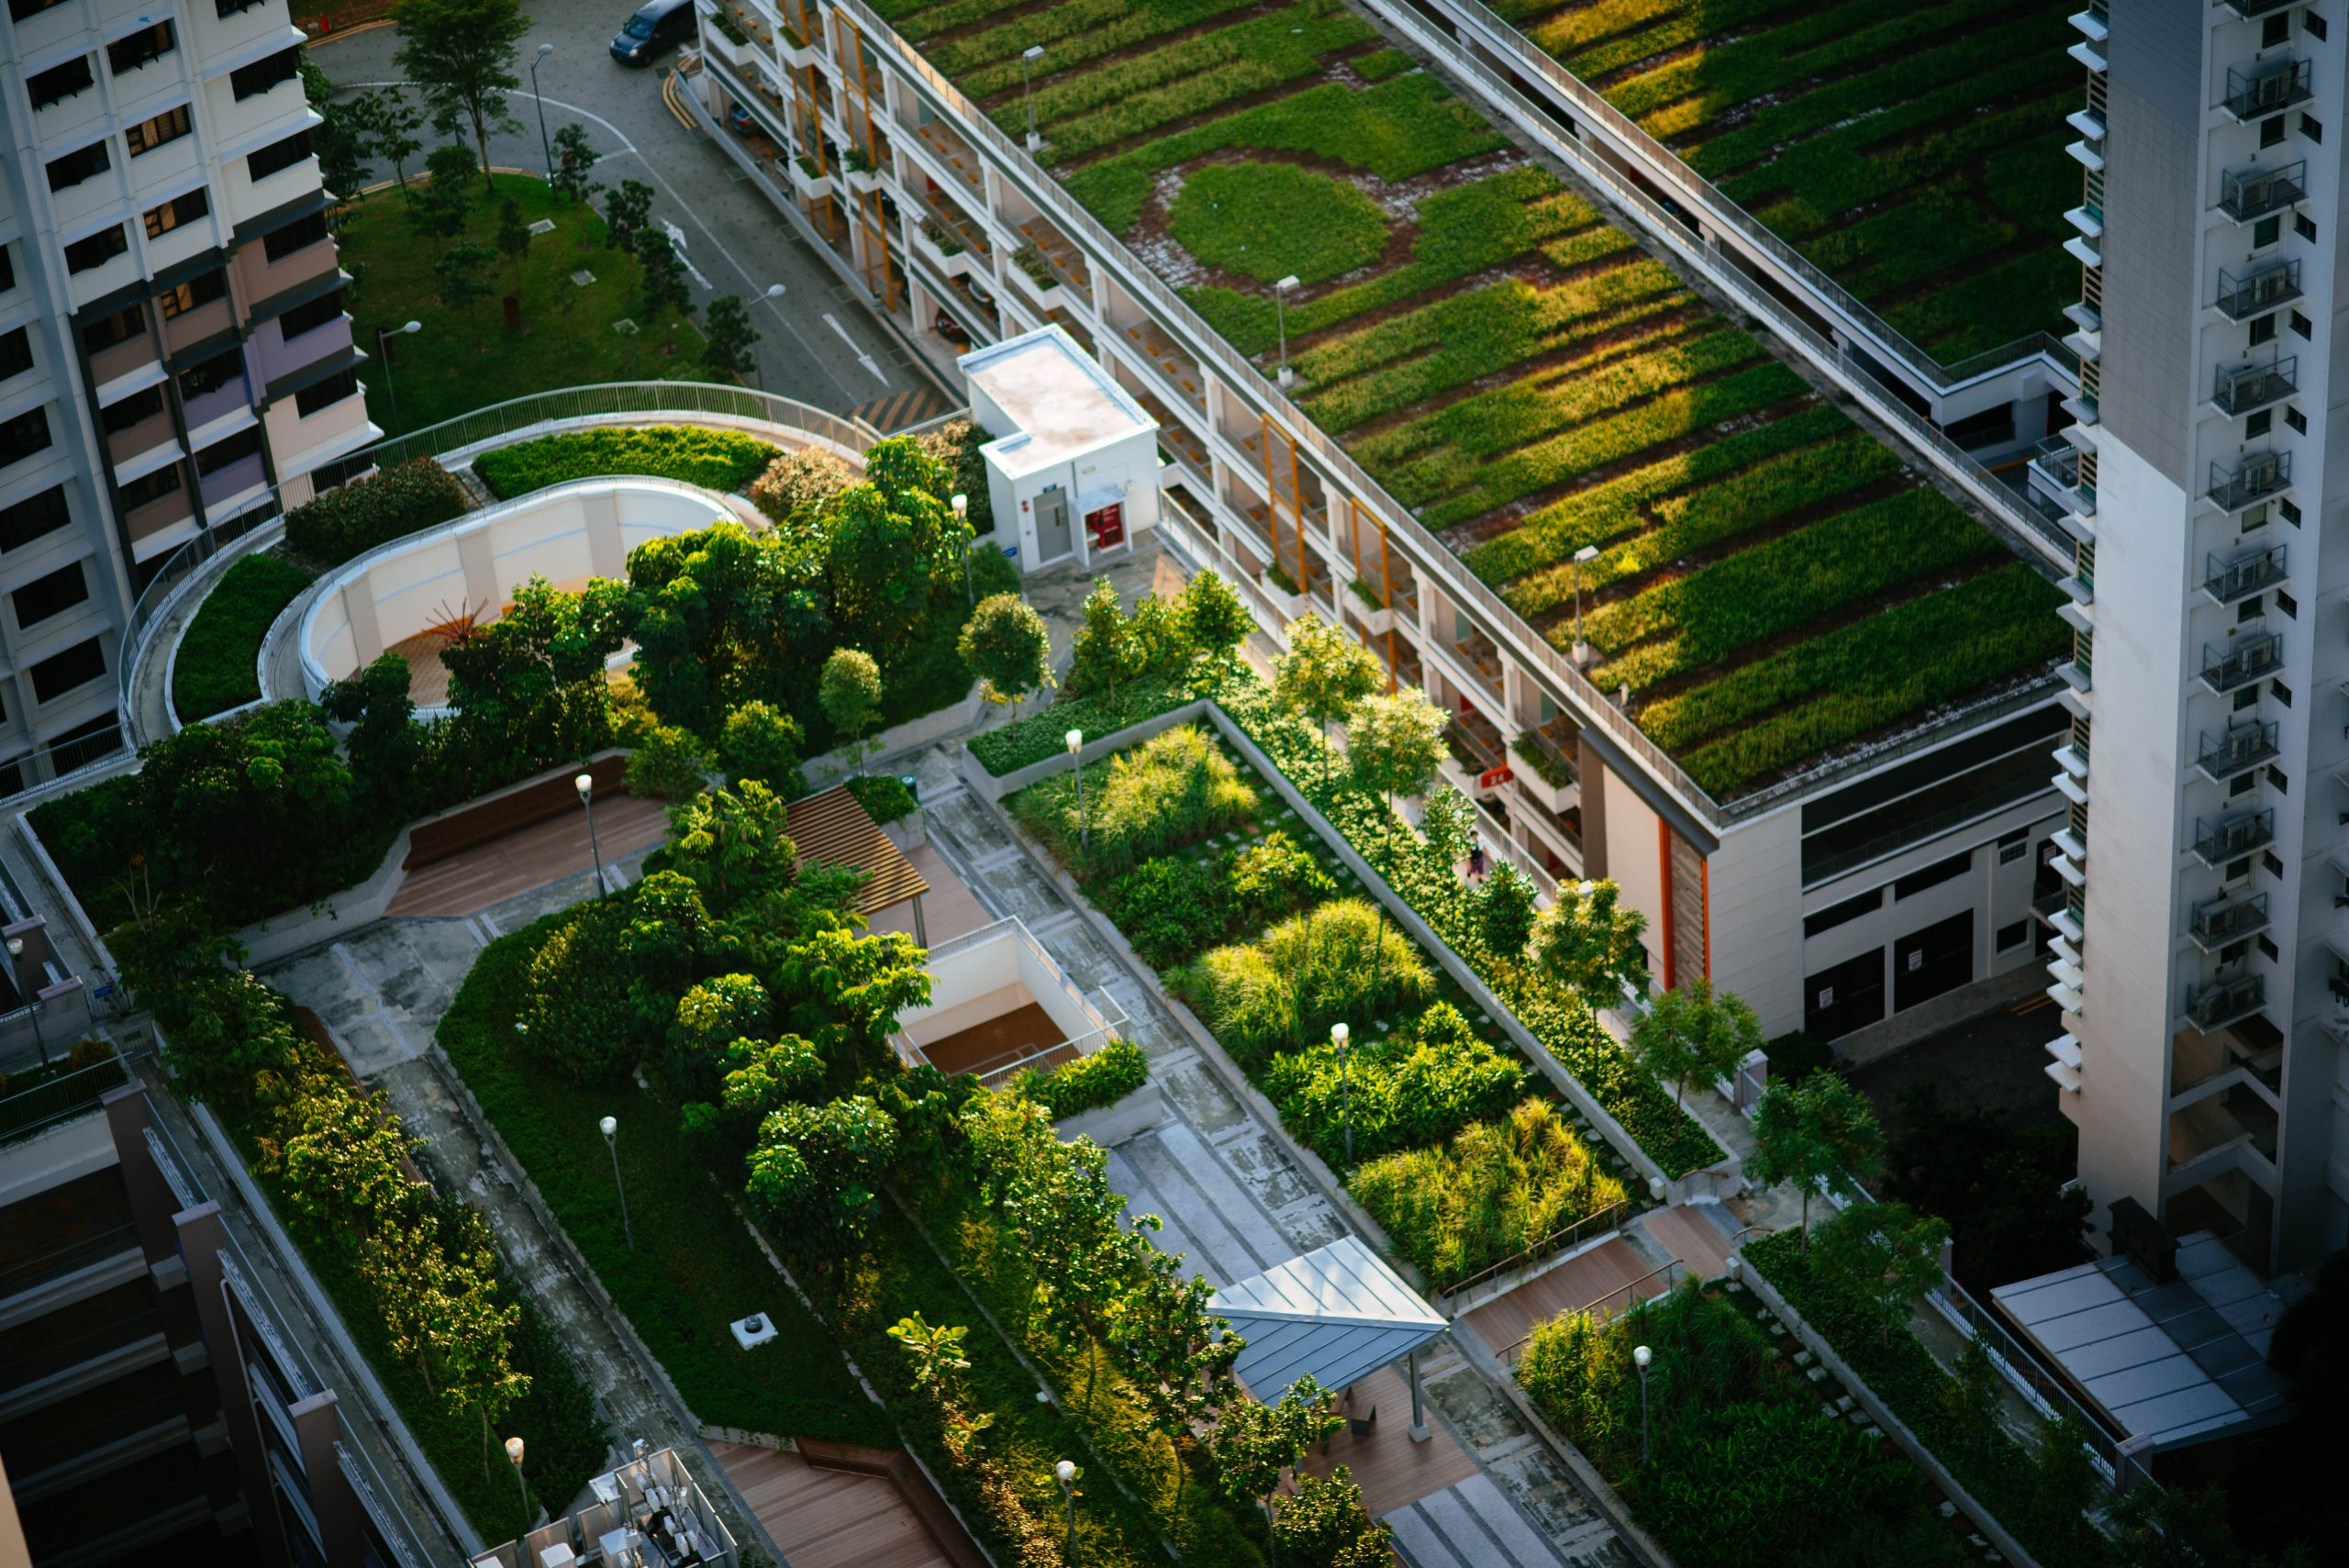 Sustainable Ecological City